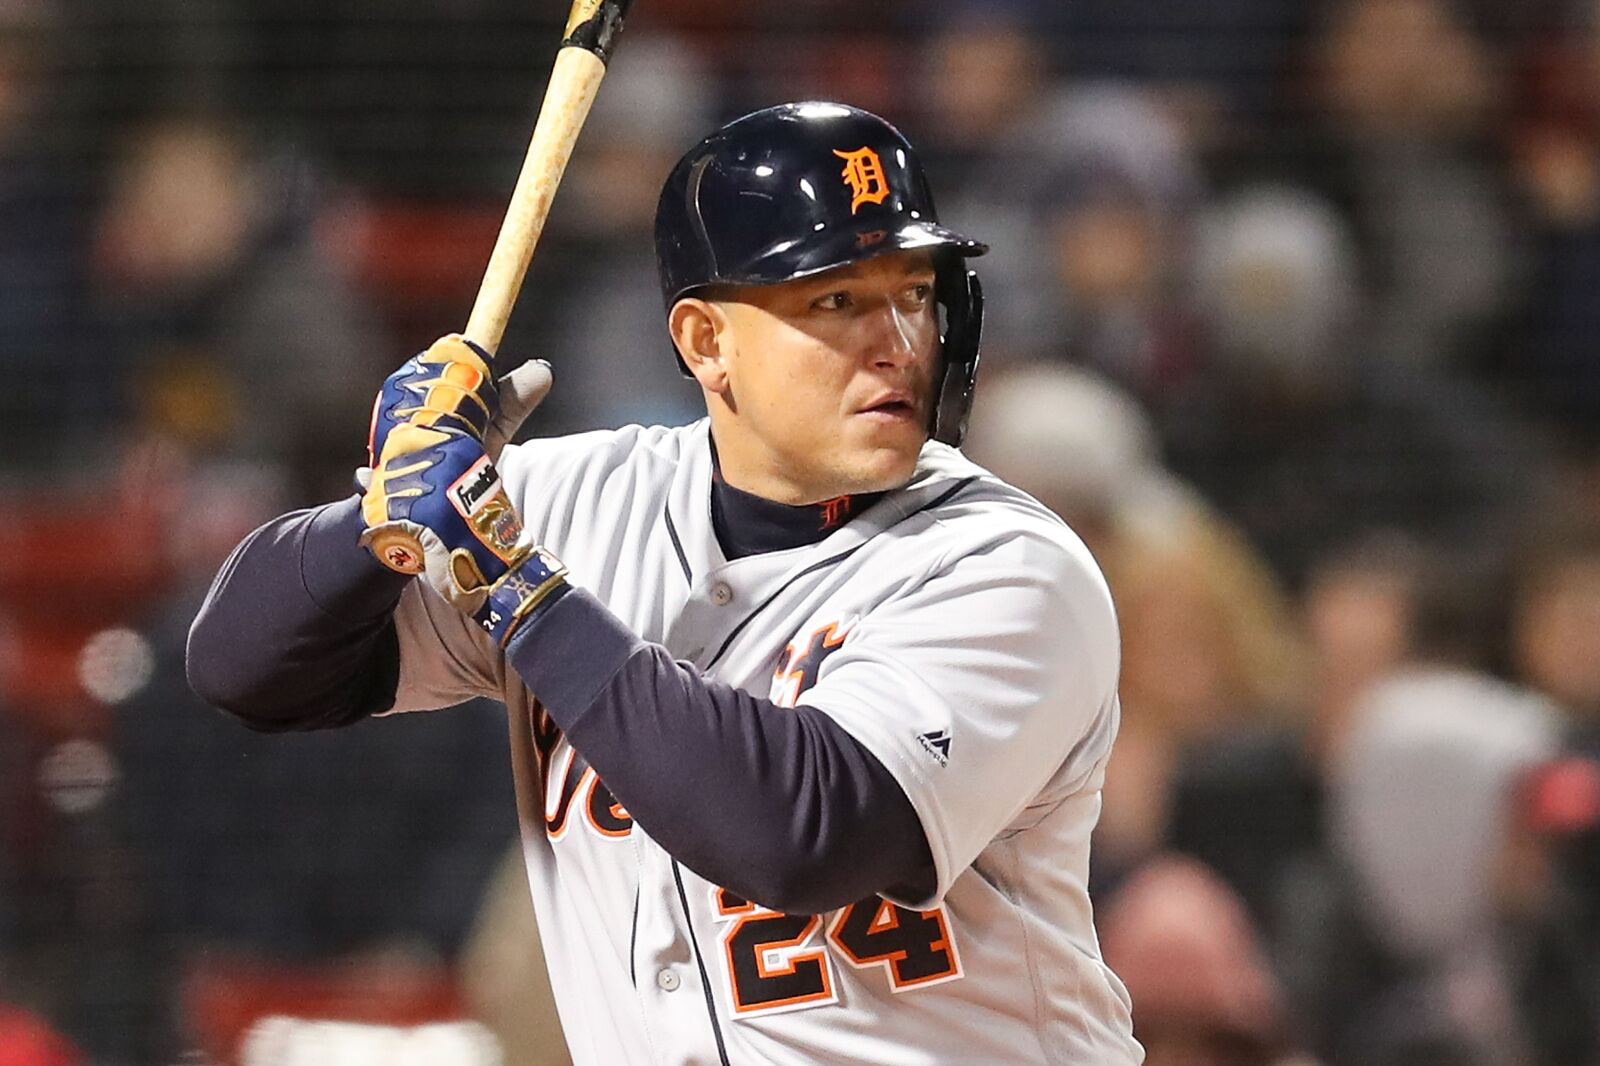 Miguel Cabrera at the plate for the Detroit Tigers